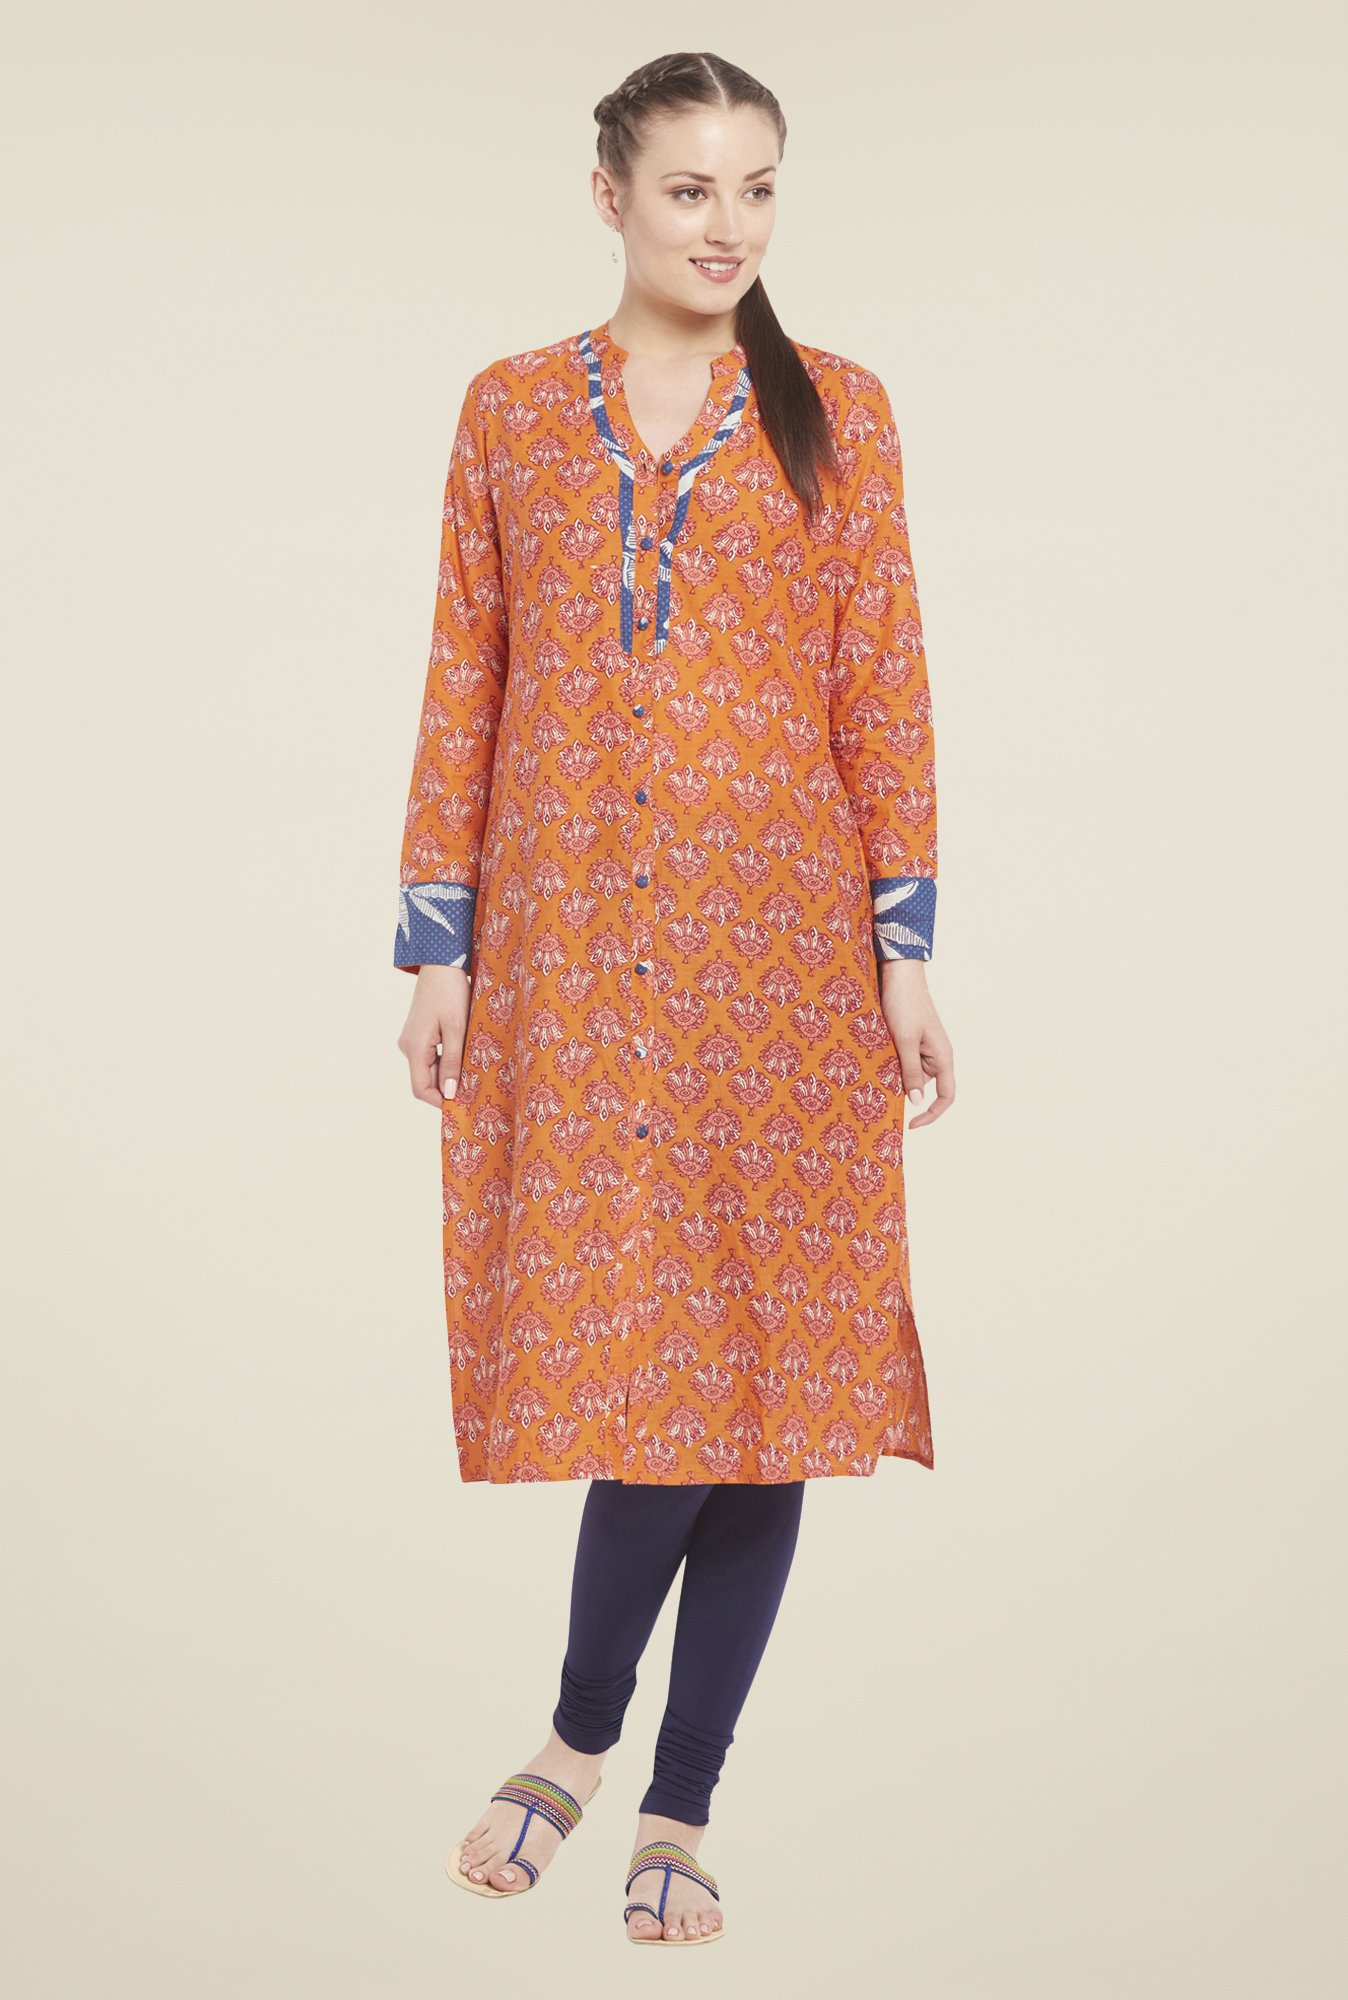 Globus Orange Cotton Kurta